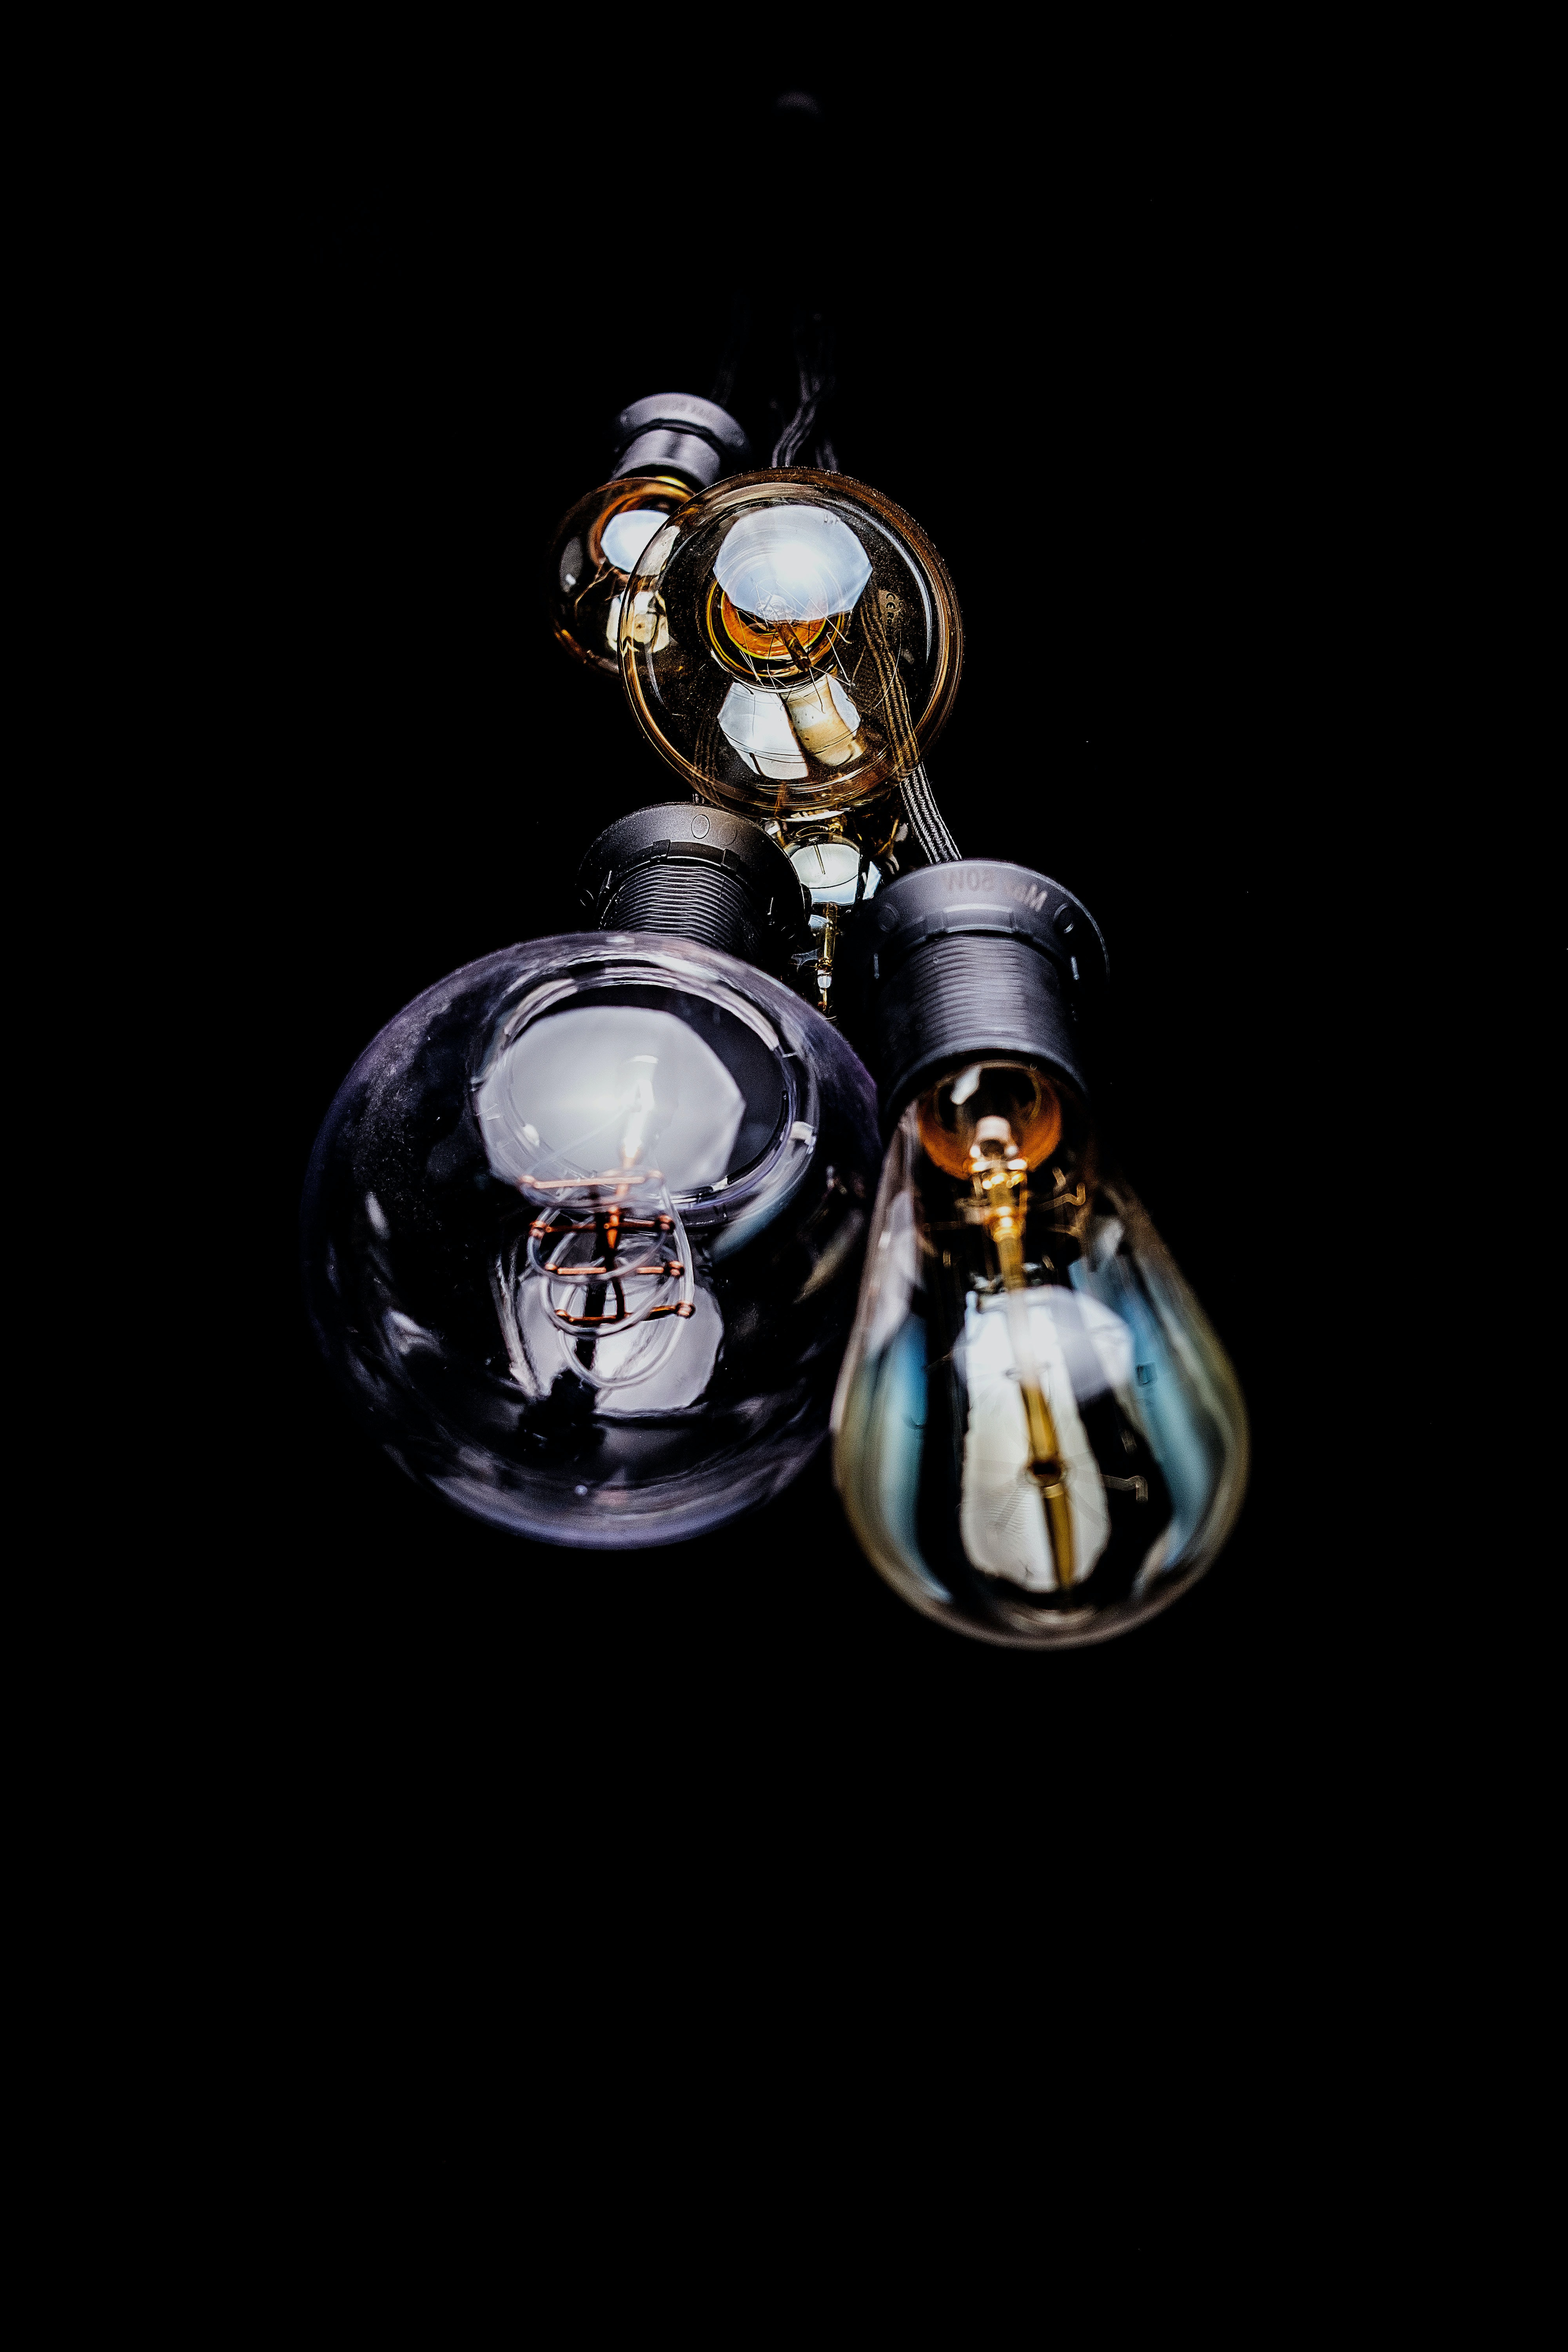 A close-up of the light bulbs against the black background in Cascais.